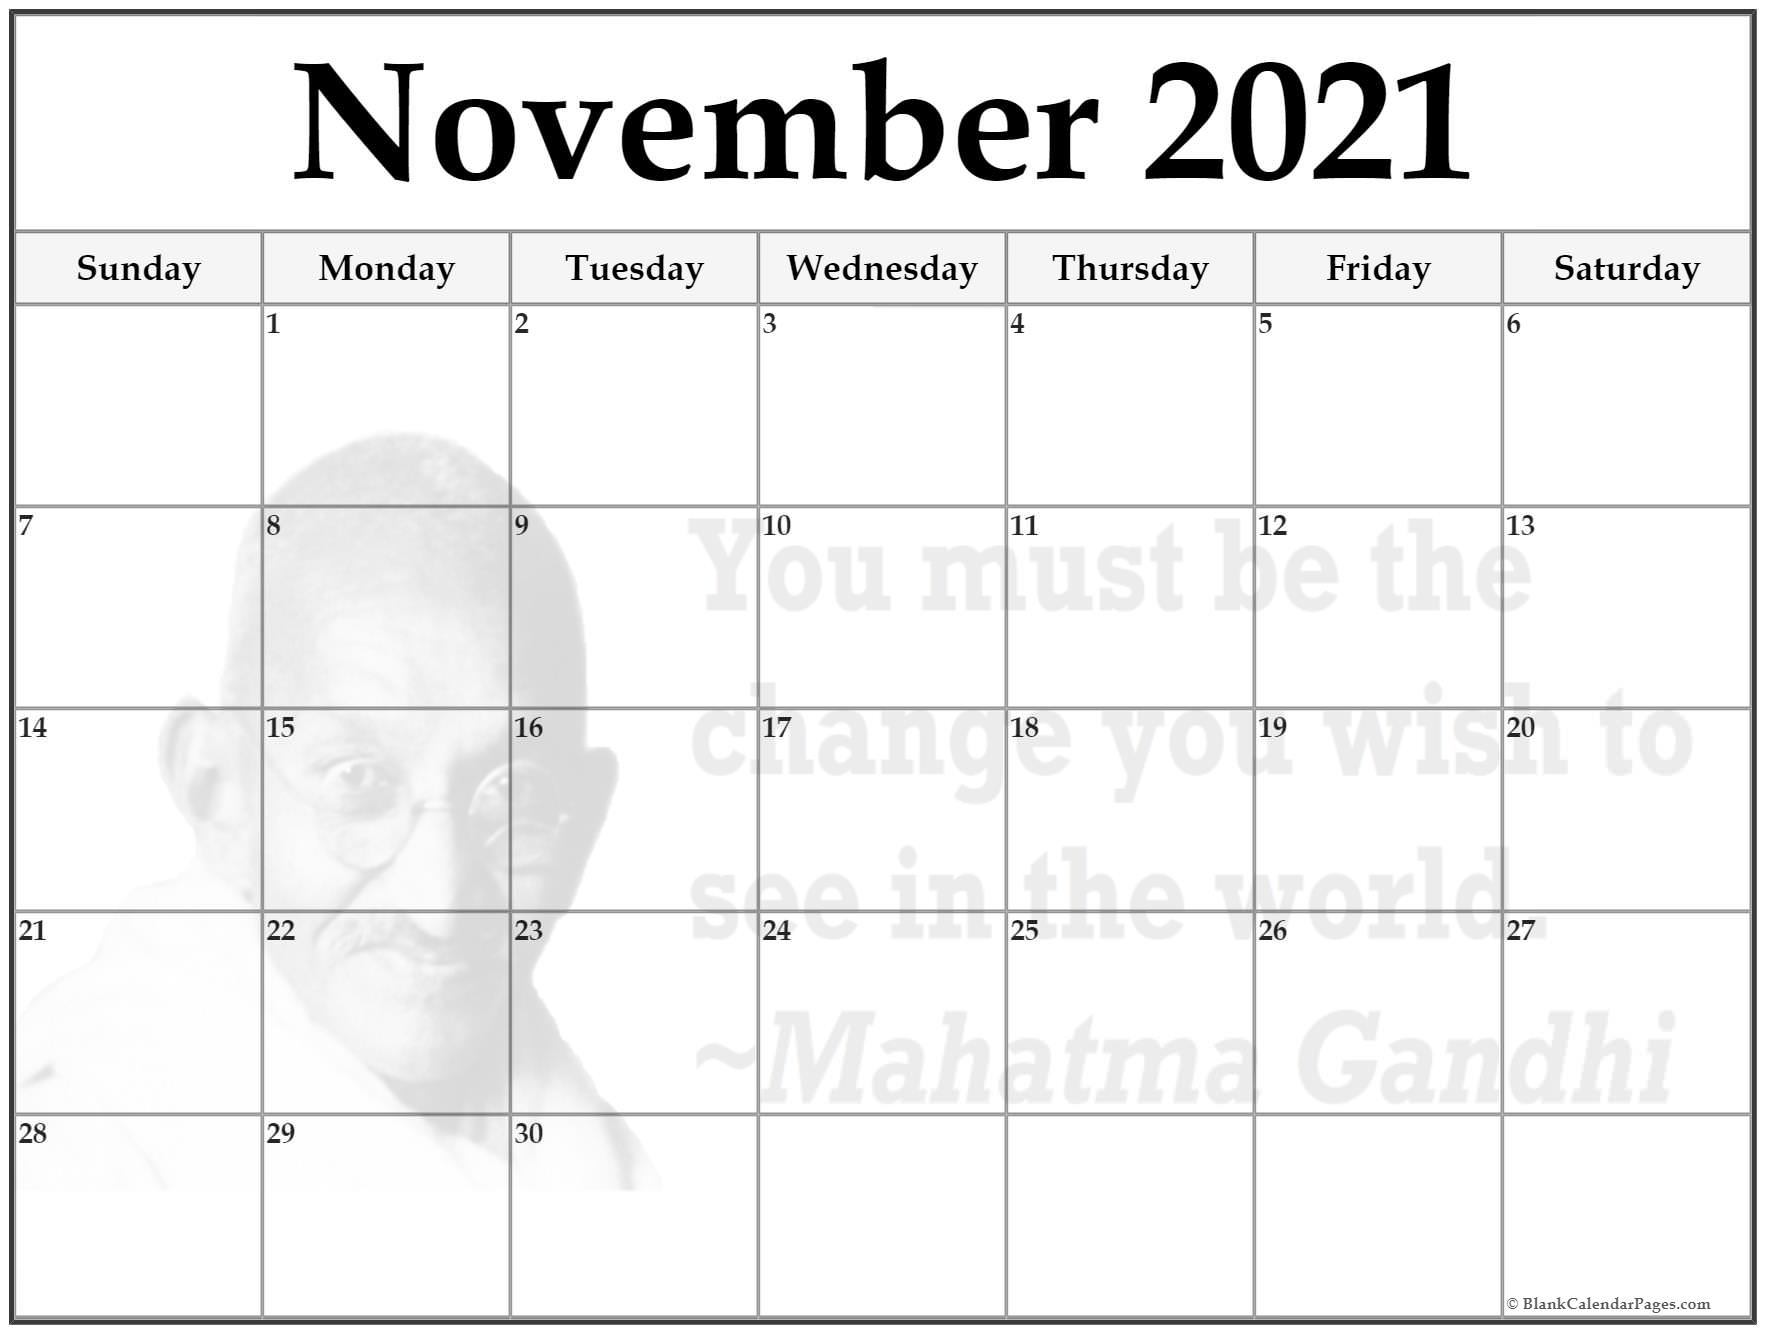 November 2018 monthly calendar template. You must be the change you wish to see in the world. ~Mahatma Gandhi